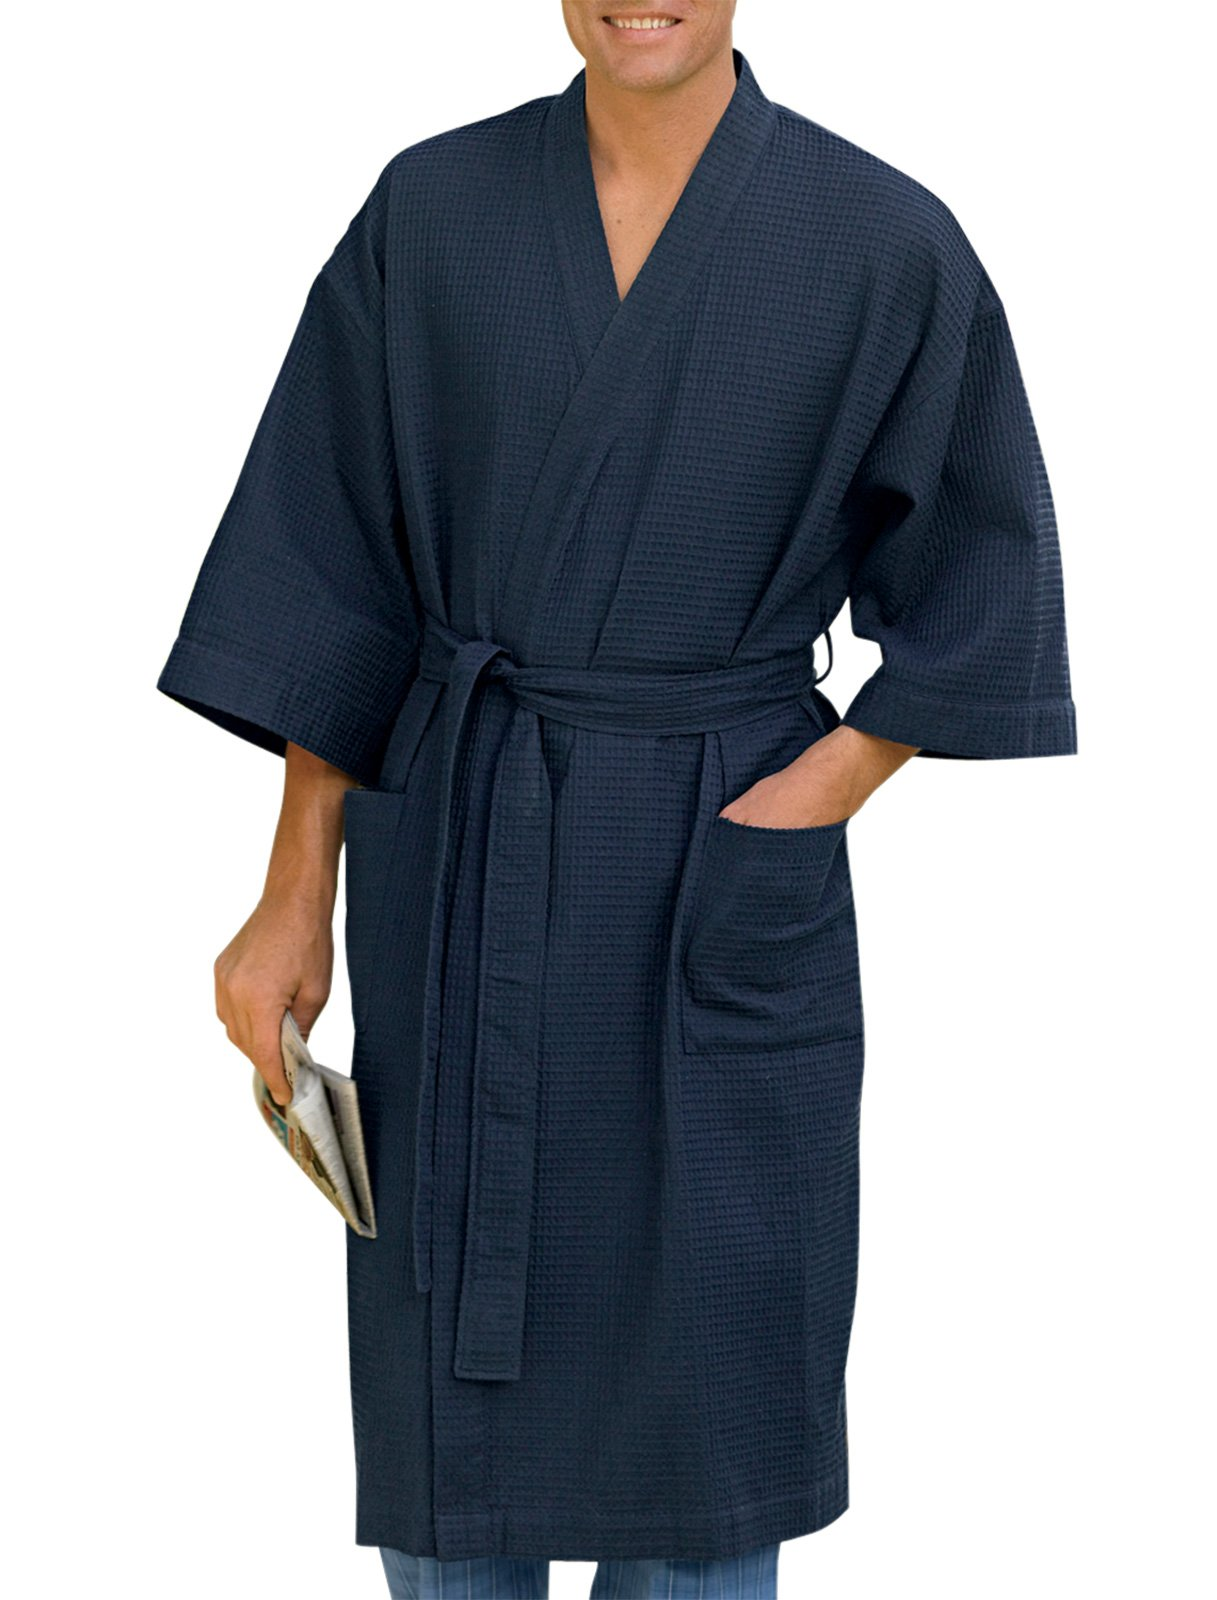 Harbor Bay by DXL Big and Tall Waffle-Knit Kimono Robe (3X/4X, Navy)